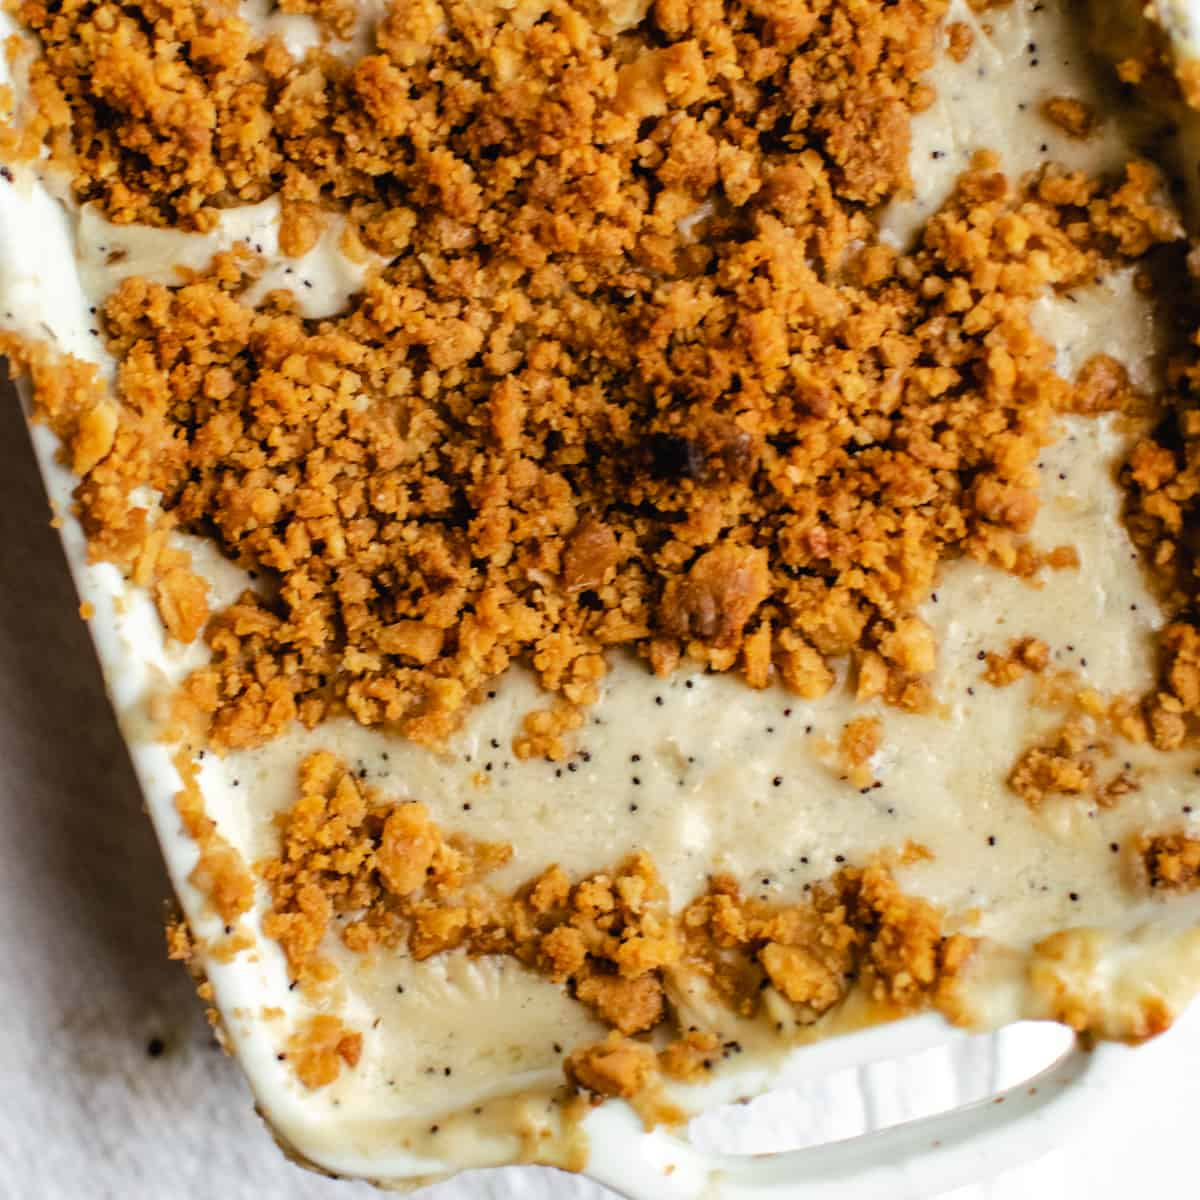 casserole in a white dish with a golden crunchy cracker crumb topping on white background